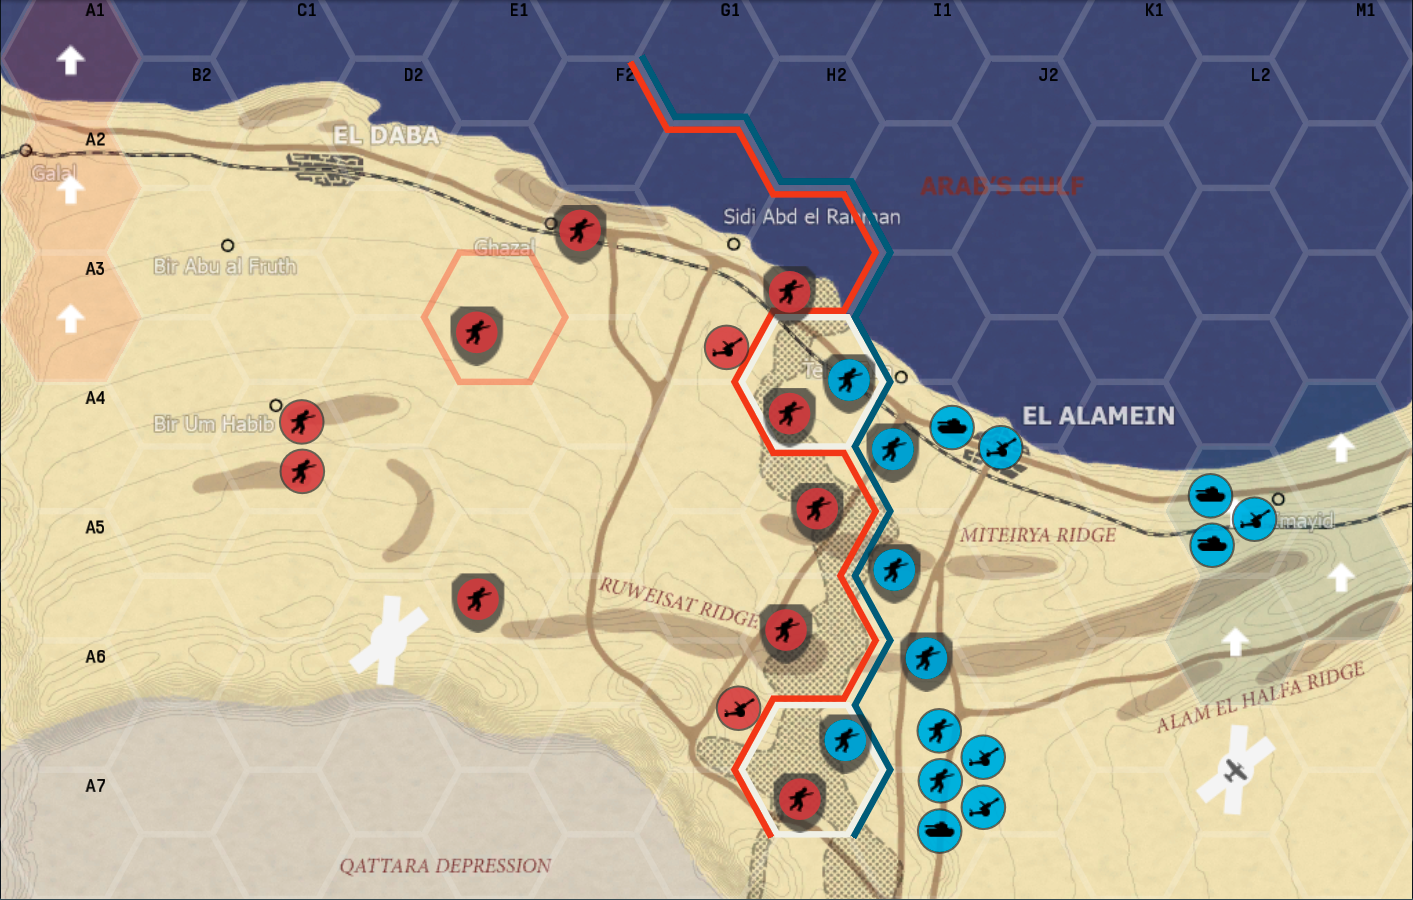 Wwmap el alamein.png